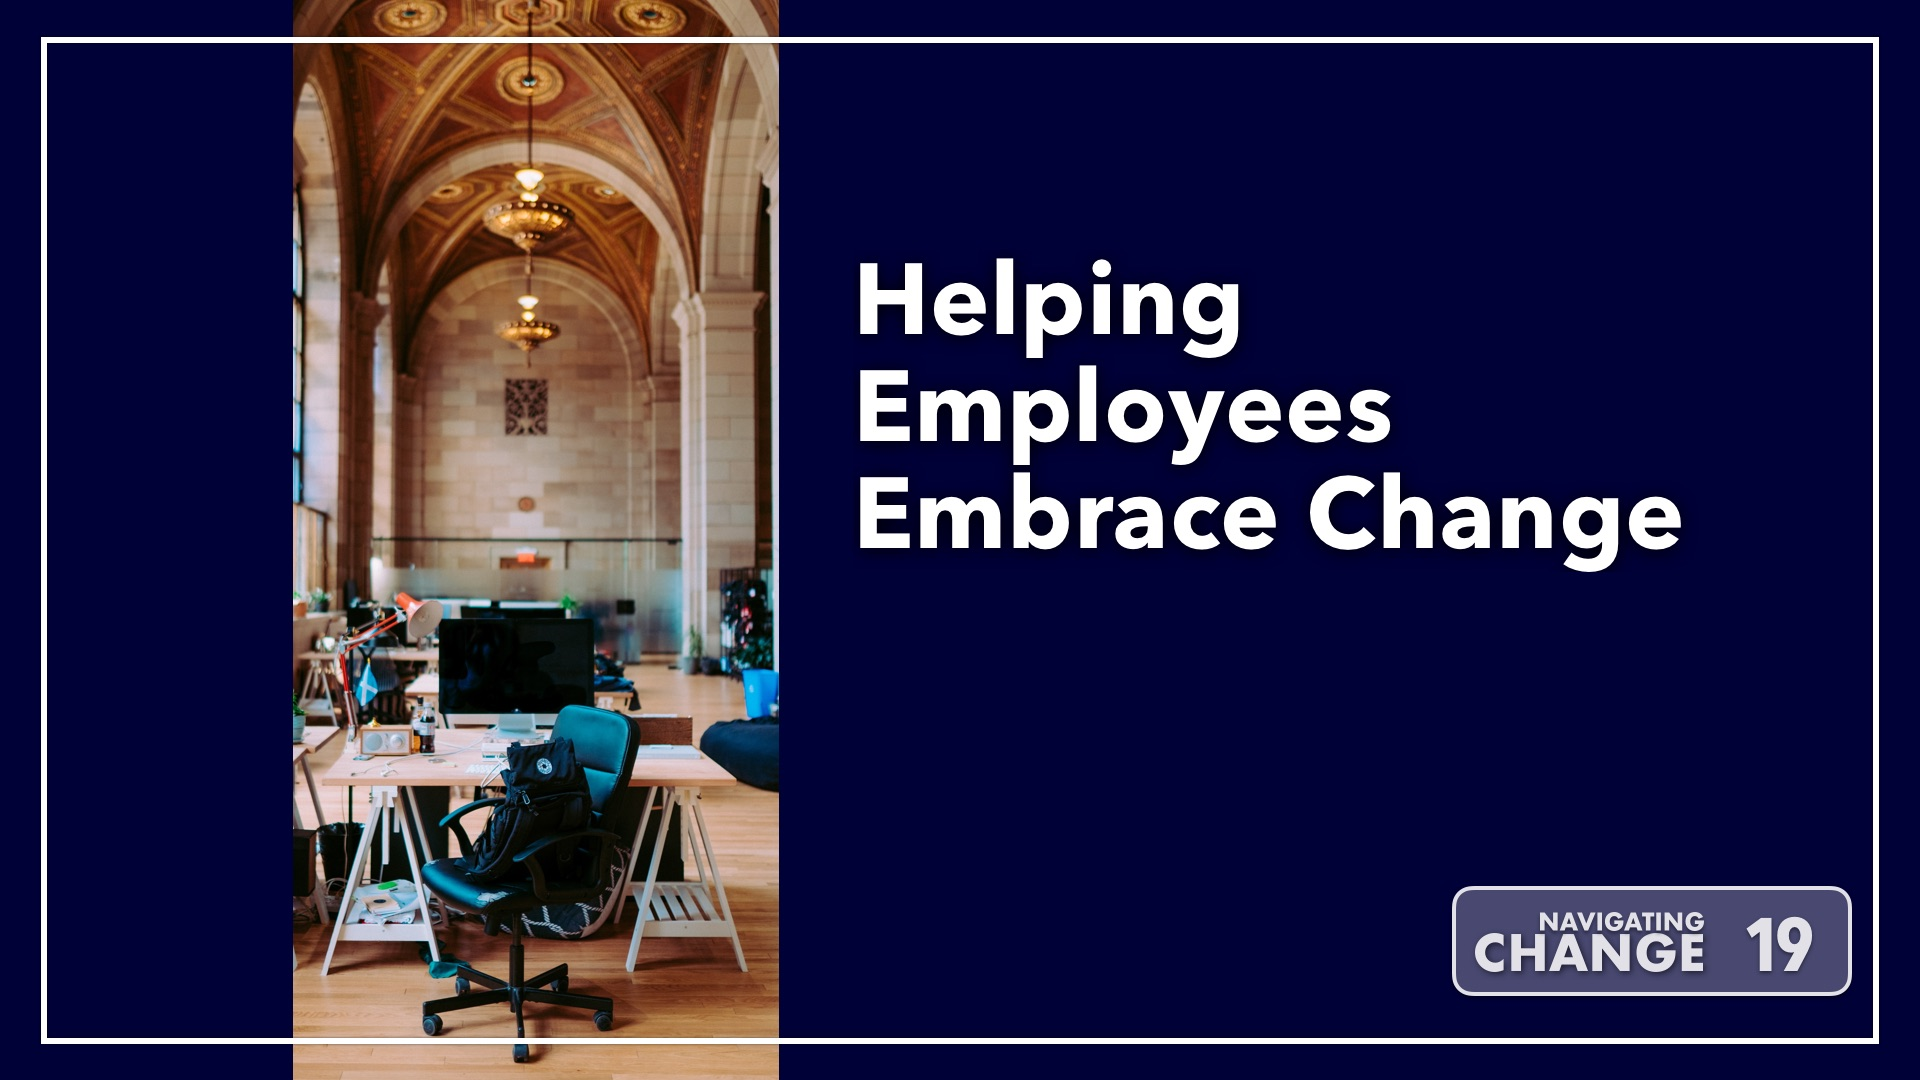 Listen to Helping Employees Embrace Change on Navigating Change The Education Podcast